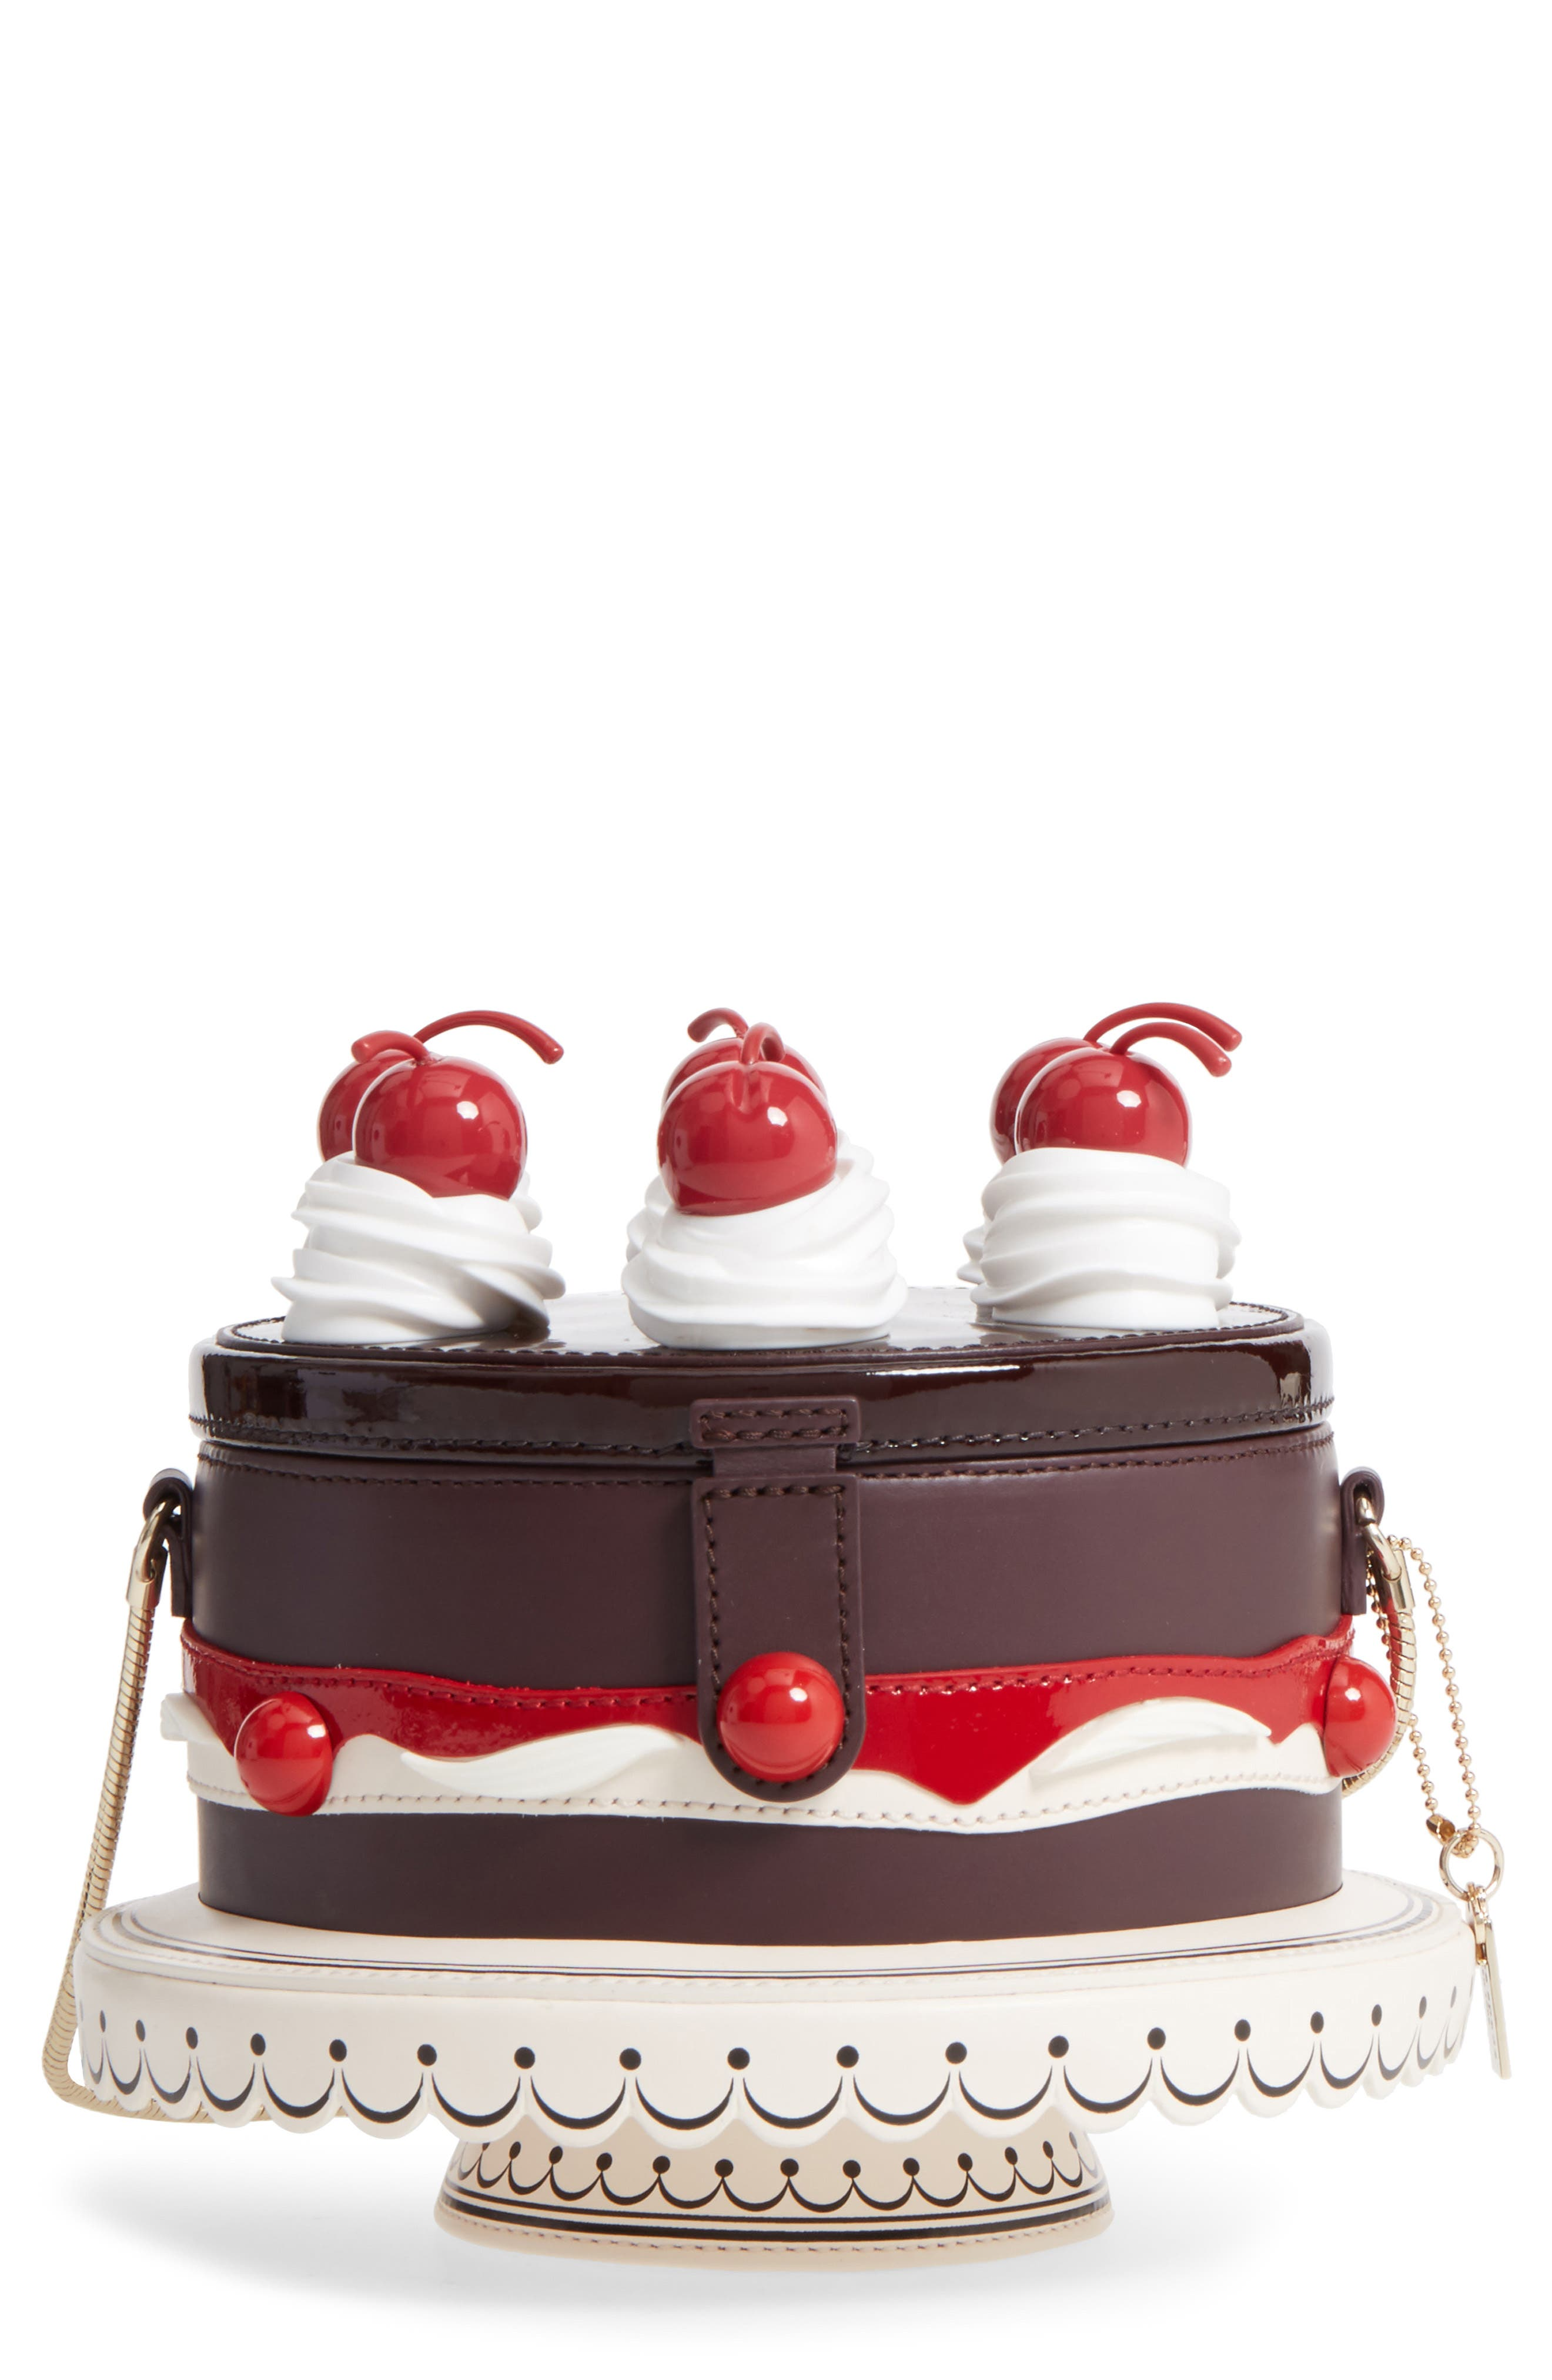 ma cherie - cherry cake leather shoulder bag,                         Main,                         color, 200